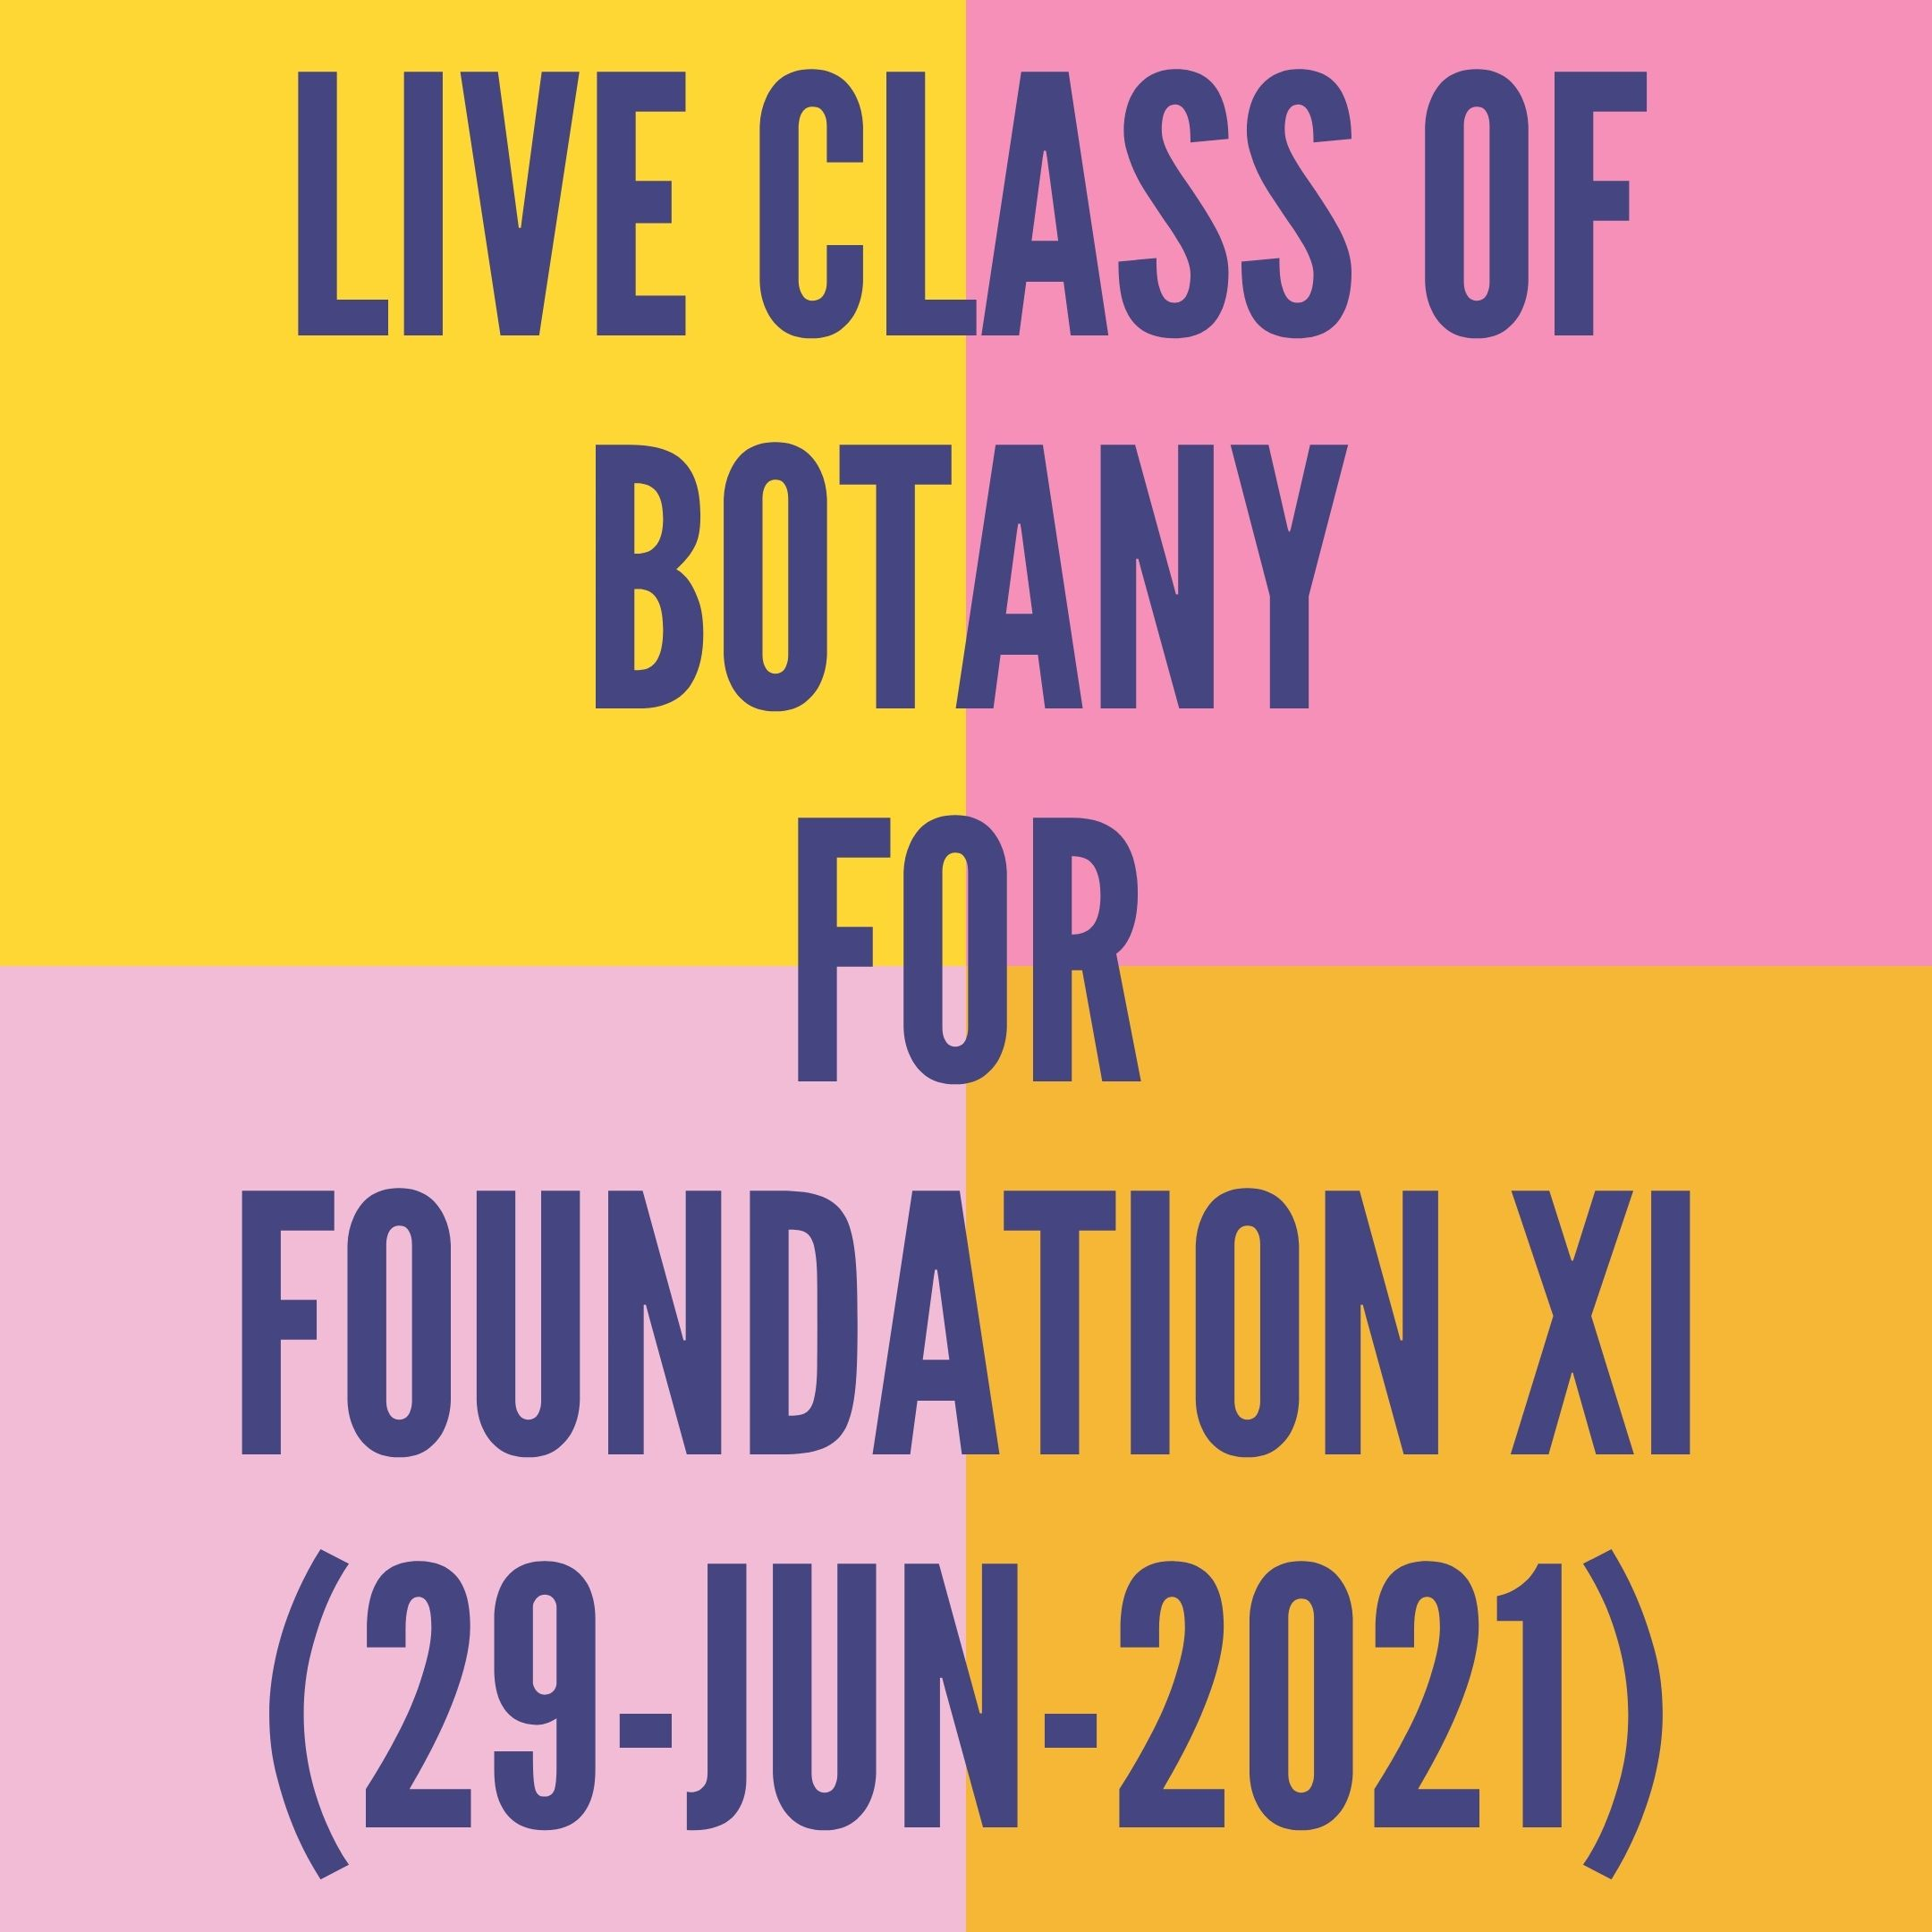 LIVE CLASS OF BOTANY FOR FOUNDATION XI (29-JUN-2021) CELL-THE UNIT OF LIFE